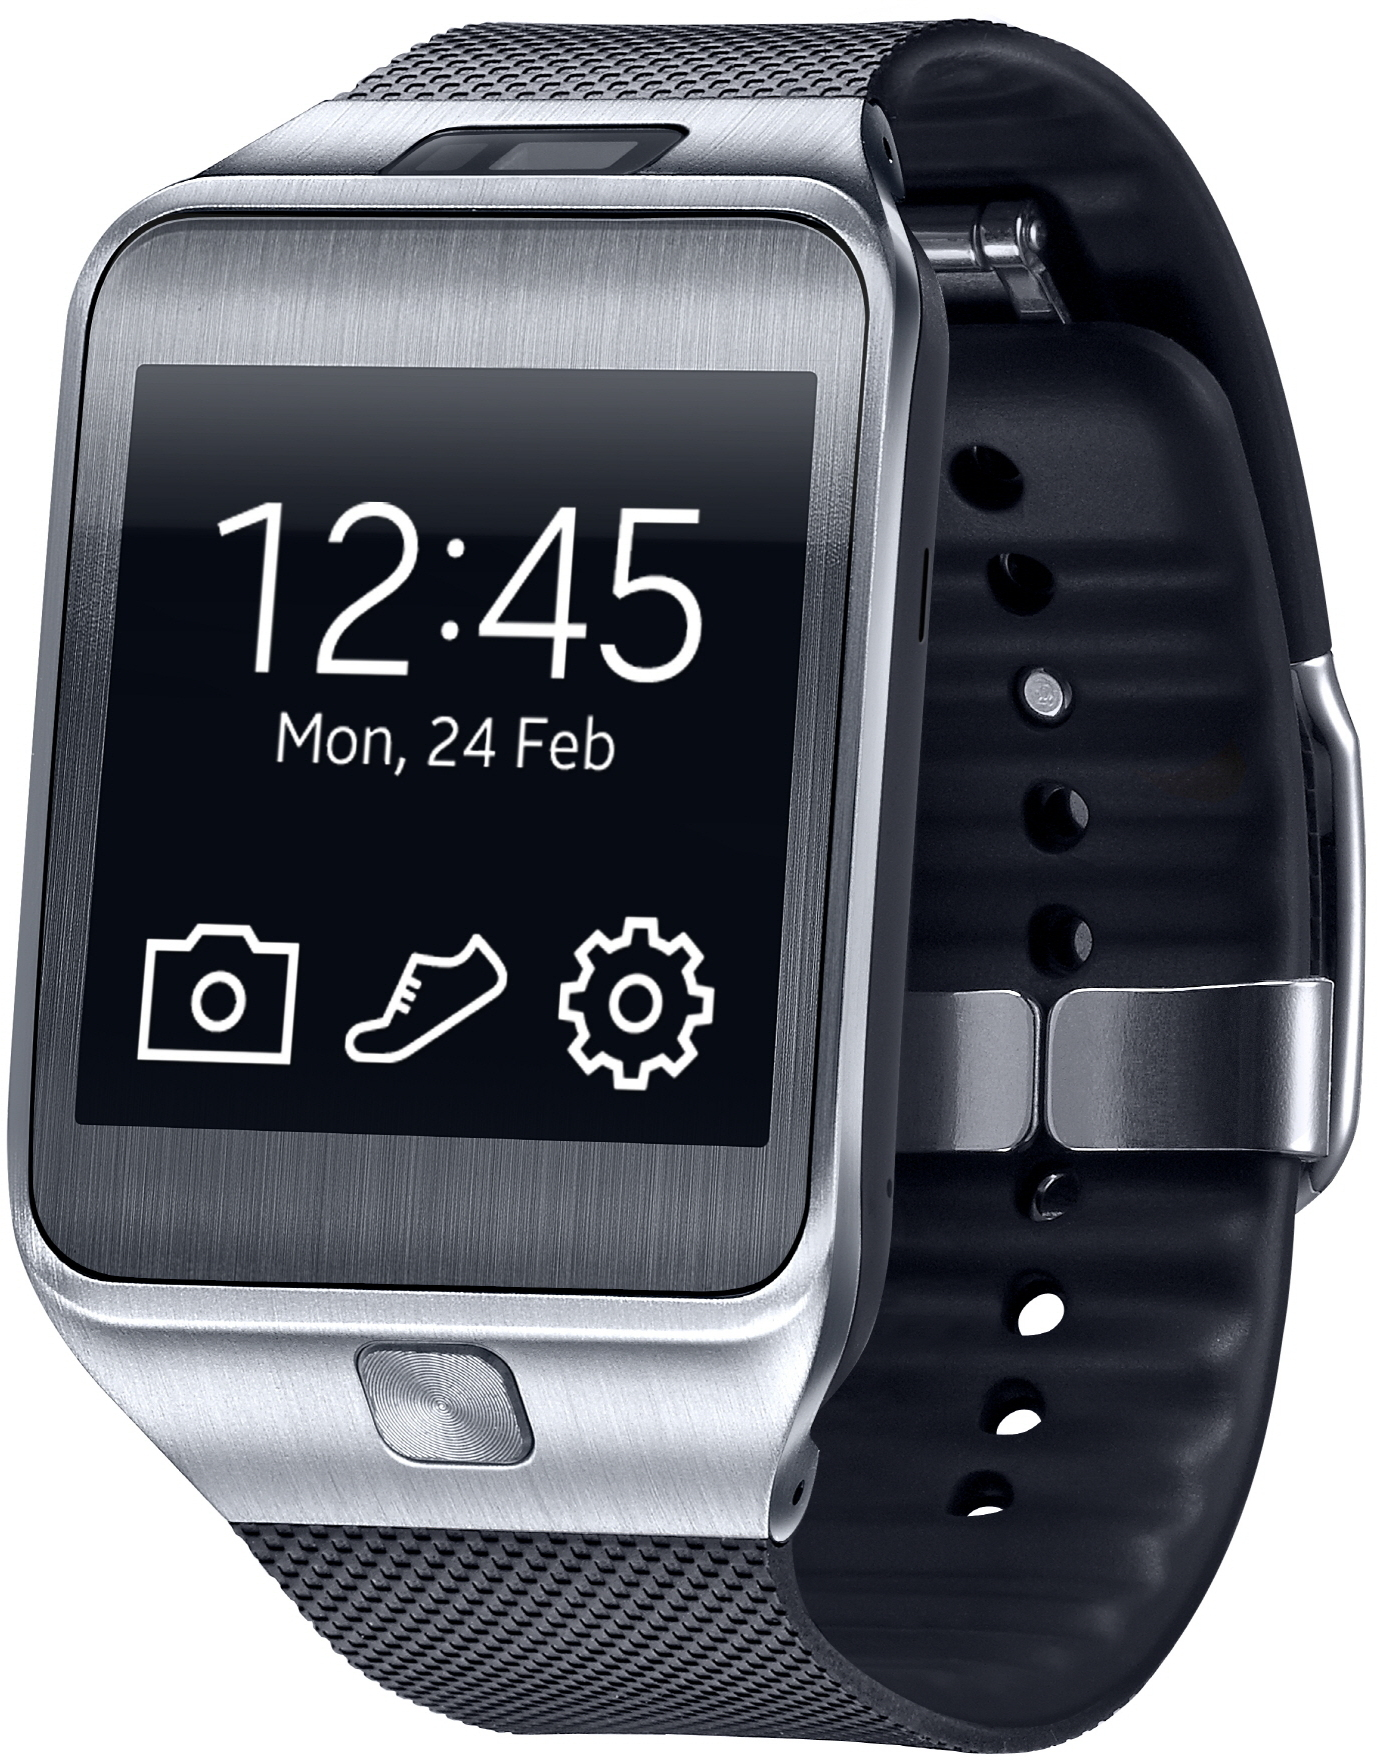 samsung gear 2 la montre connect e haut de gamme test prix et caract ristiques. Black Bedroom Furniture Sets. Home Design Ideas